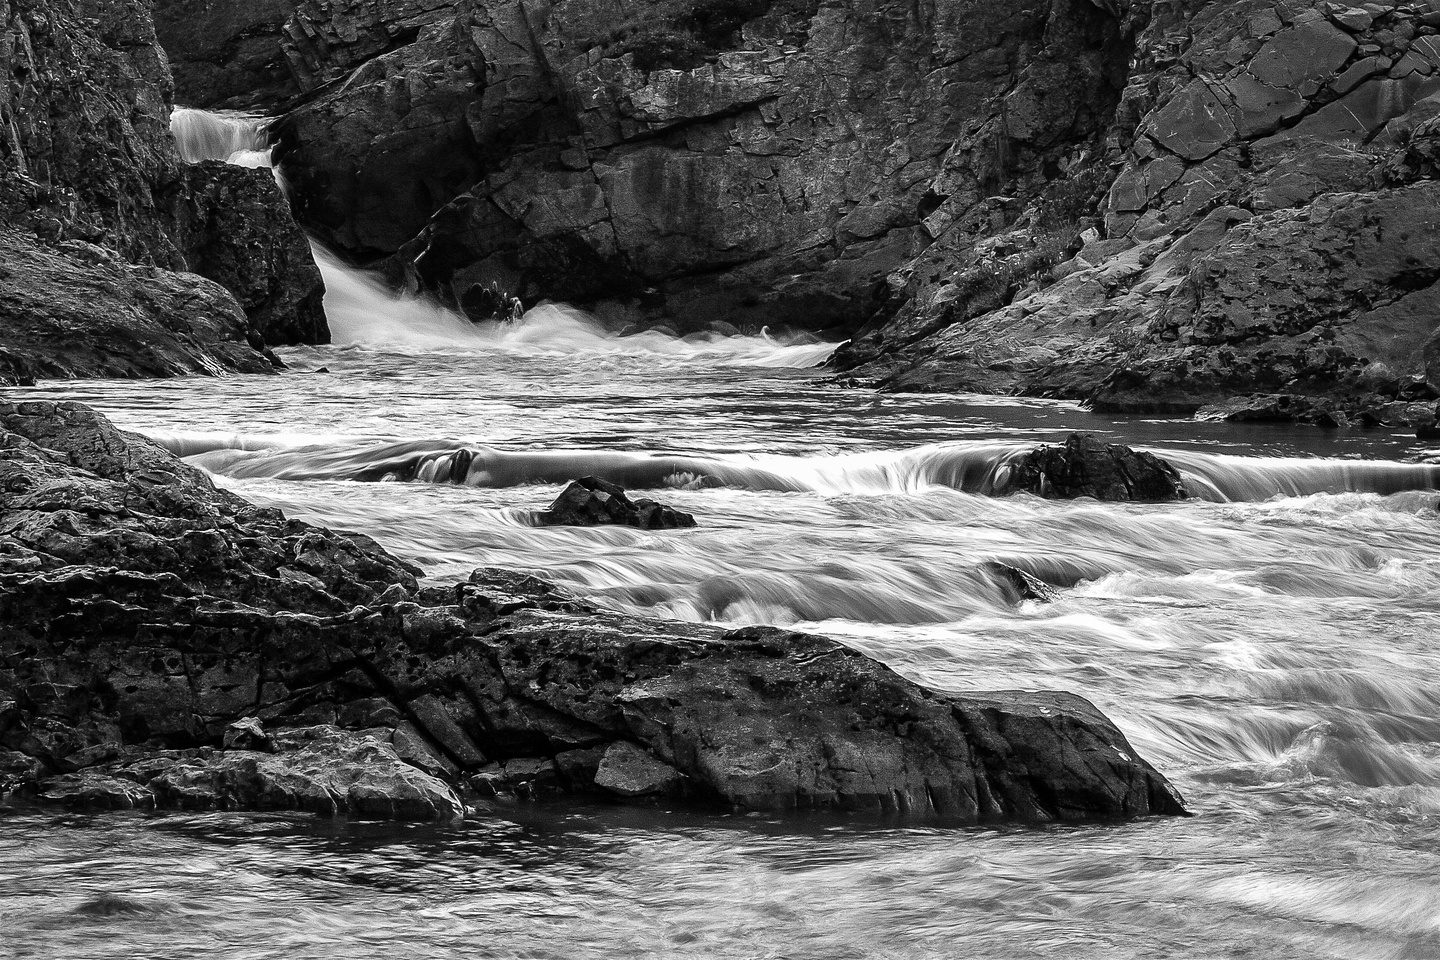 Falls along Aster Creek from near our camp site.